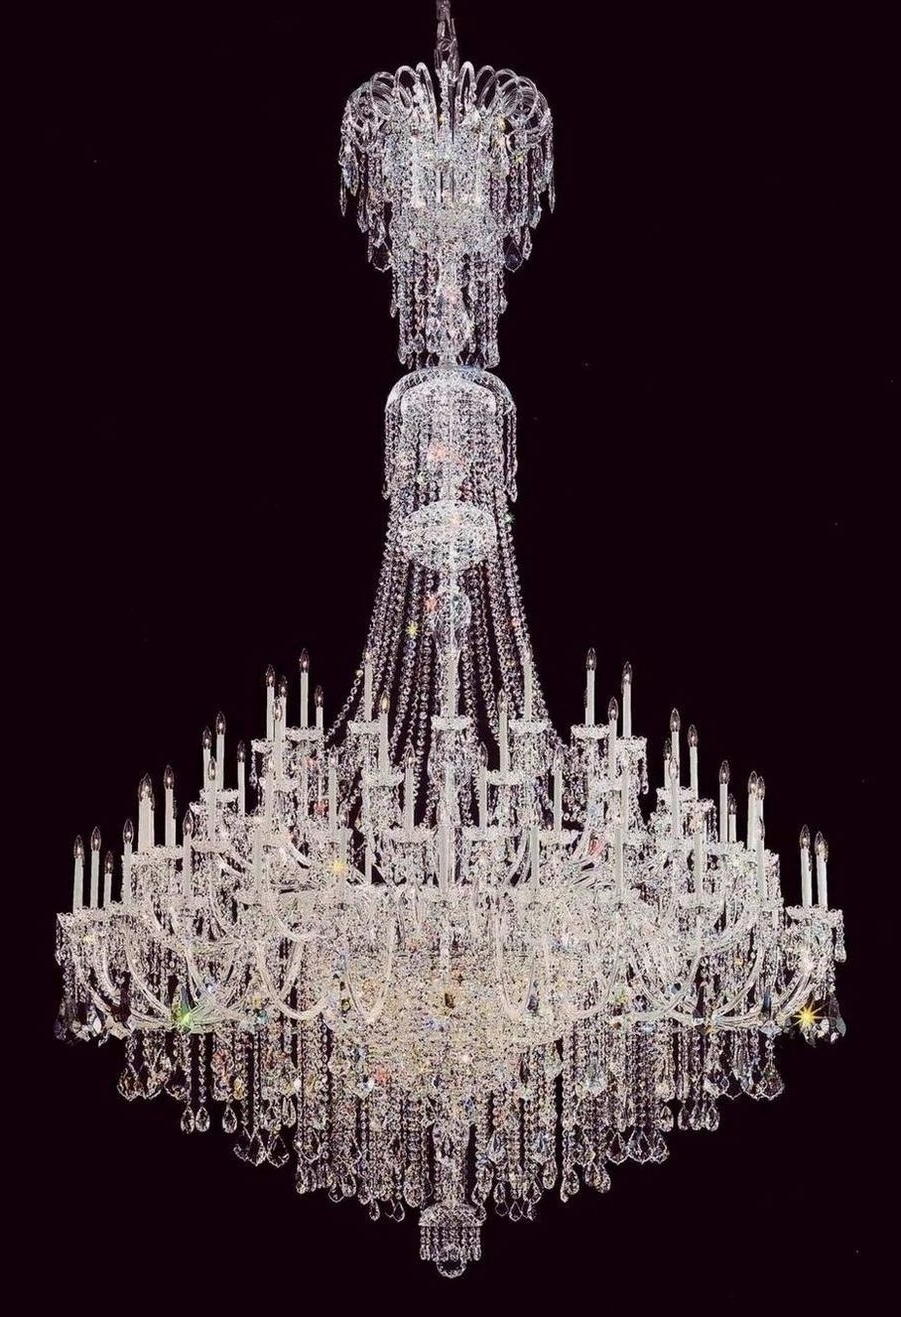 Cheap Foyer Crystal Chandelier, Buy Quality Foyer Chandelier Inside 2018 Huge Crystal Chandeliers (View 5 of 15)